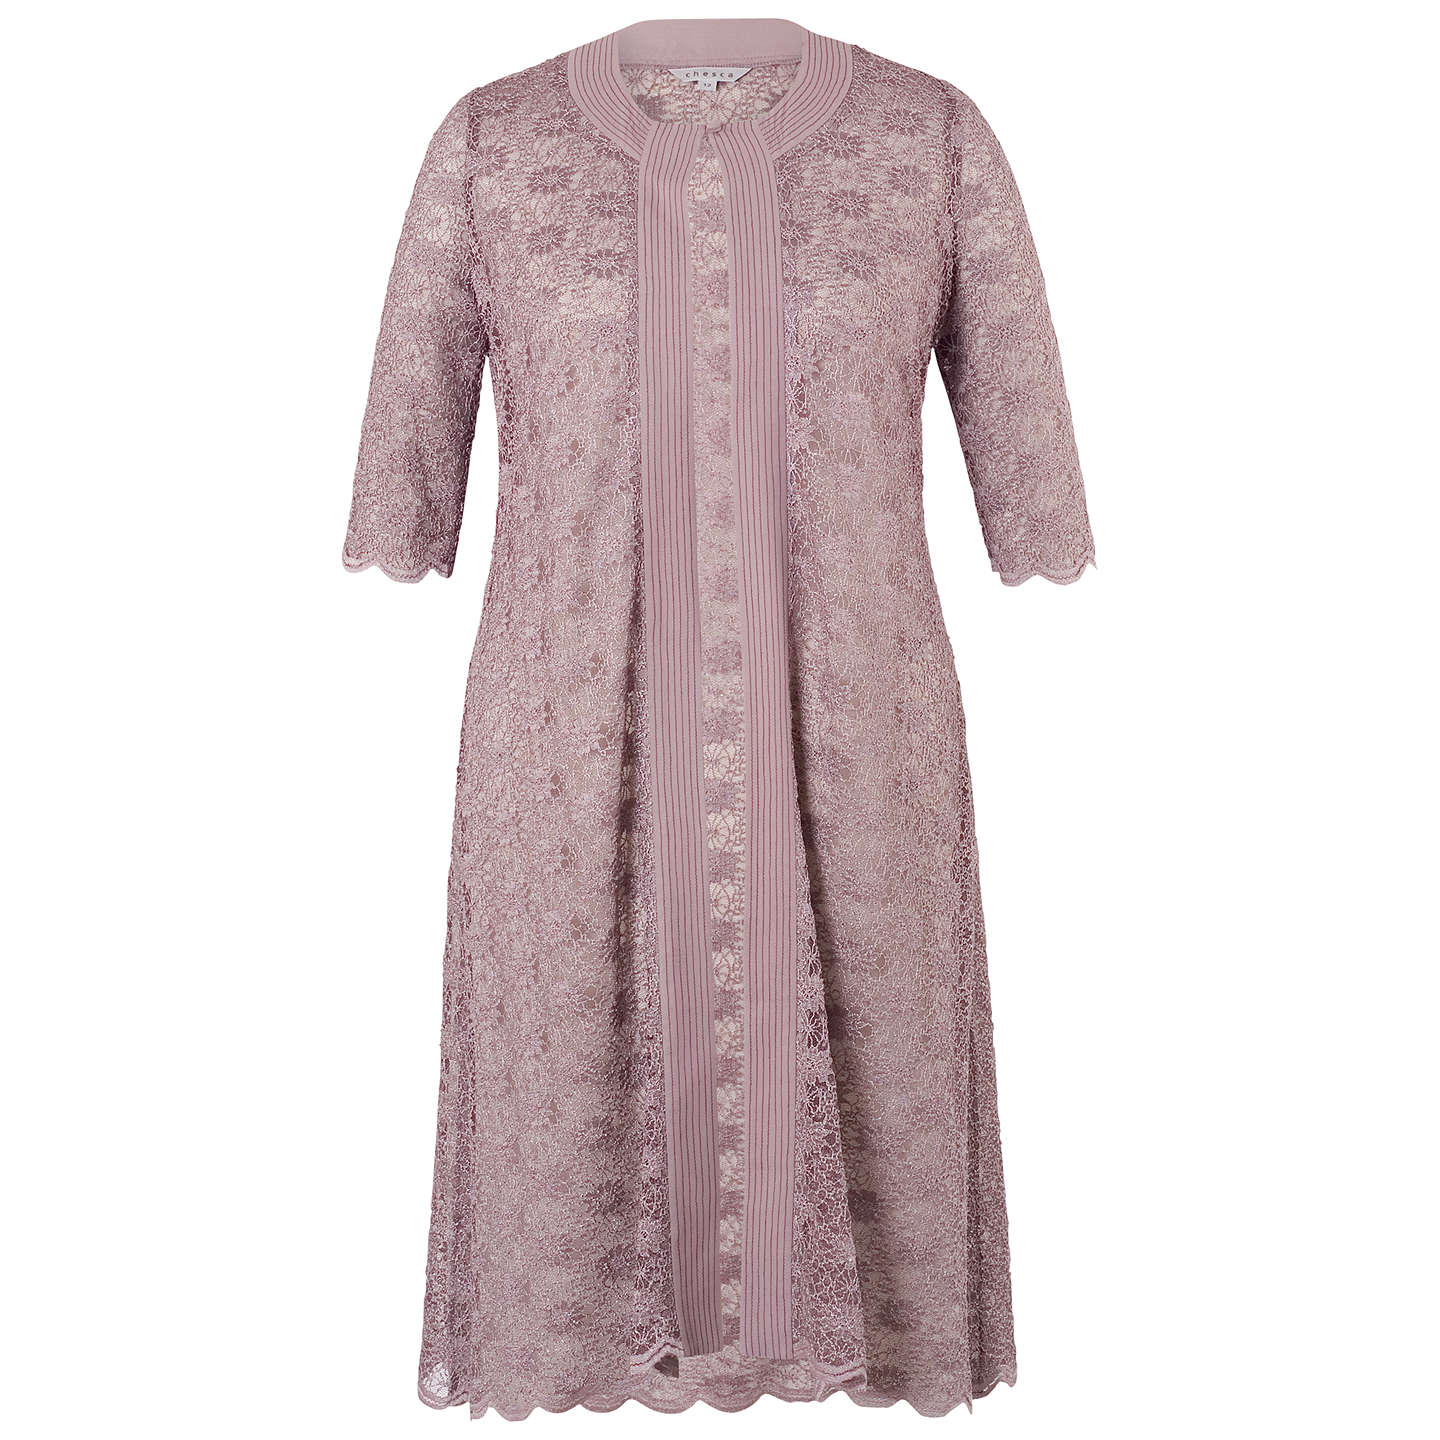 BuyChesca Scallop Lace Coat, Dark Lavender, 22 Online at johnlewis.com